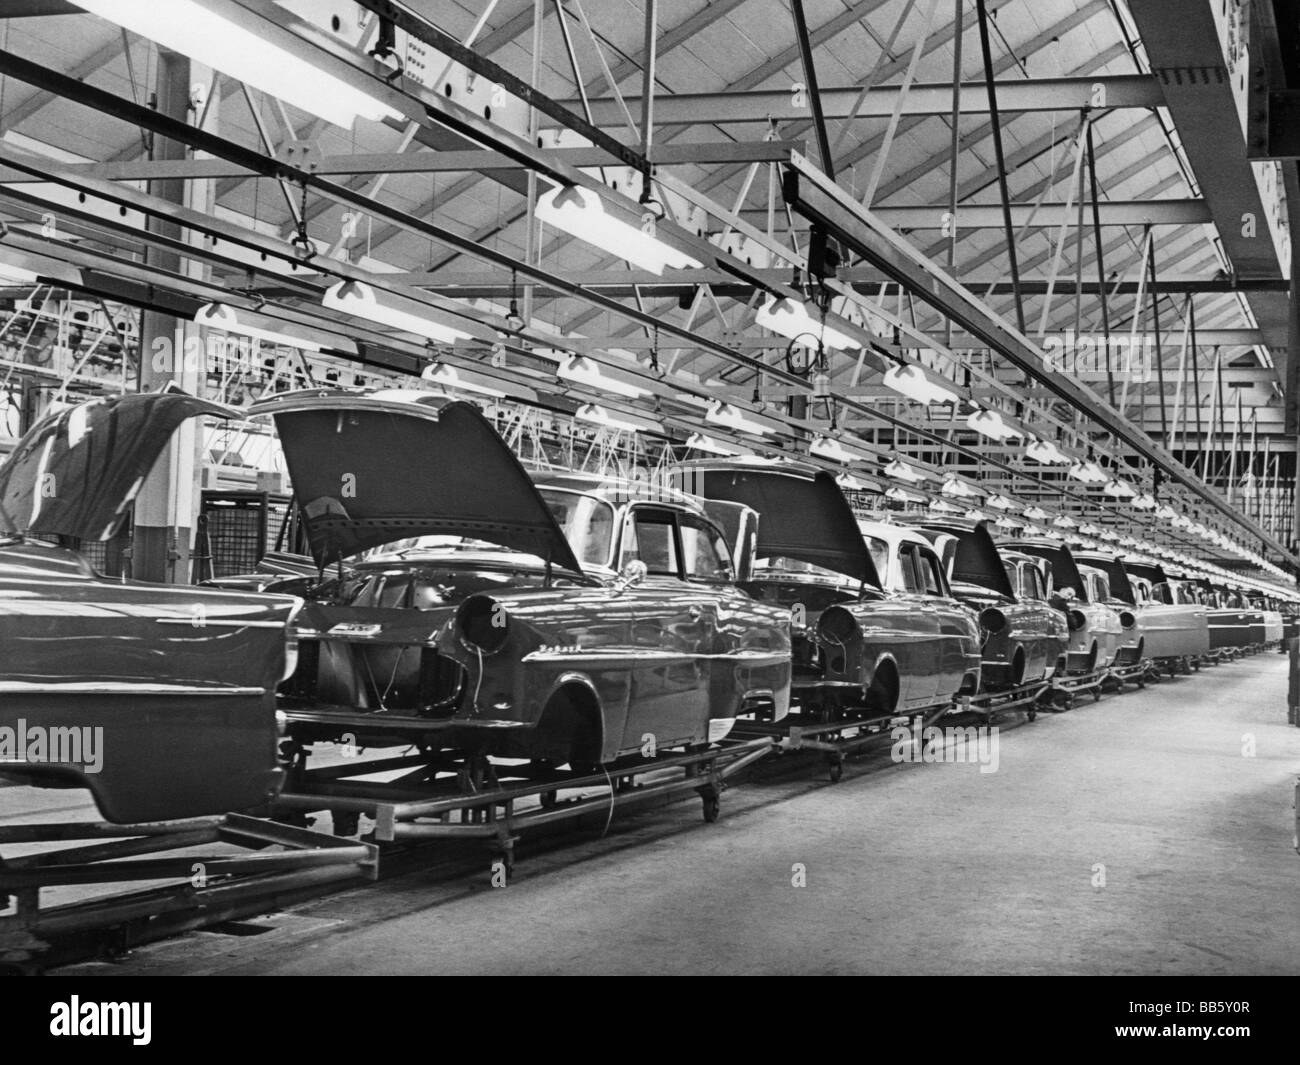 industry car industry opel factory k 40 interior view 1950s stock photo 24102535 alamy. Black Bedroom Furniture Sets. Home Design Ideas